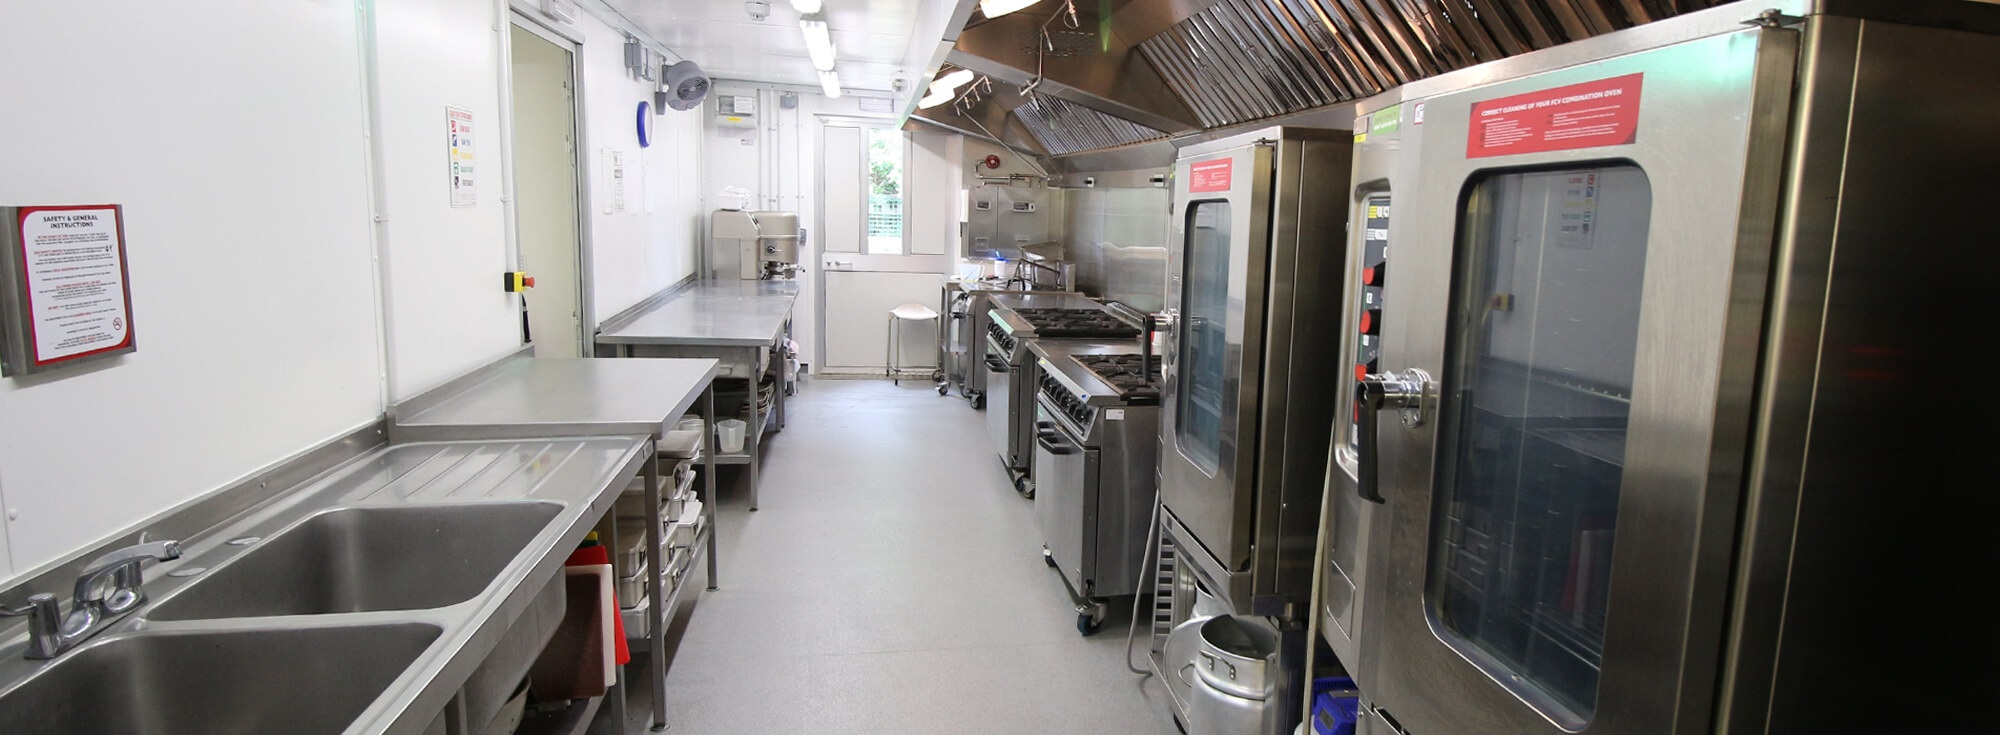 Temporary Kitchens PP8 Internal